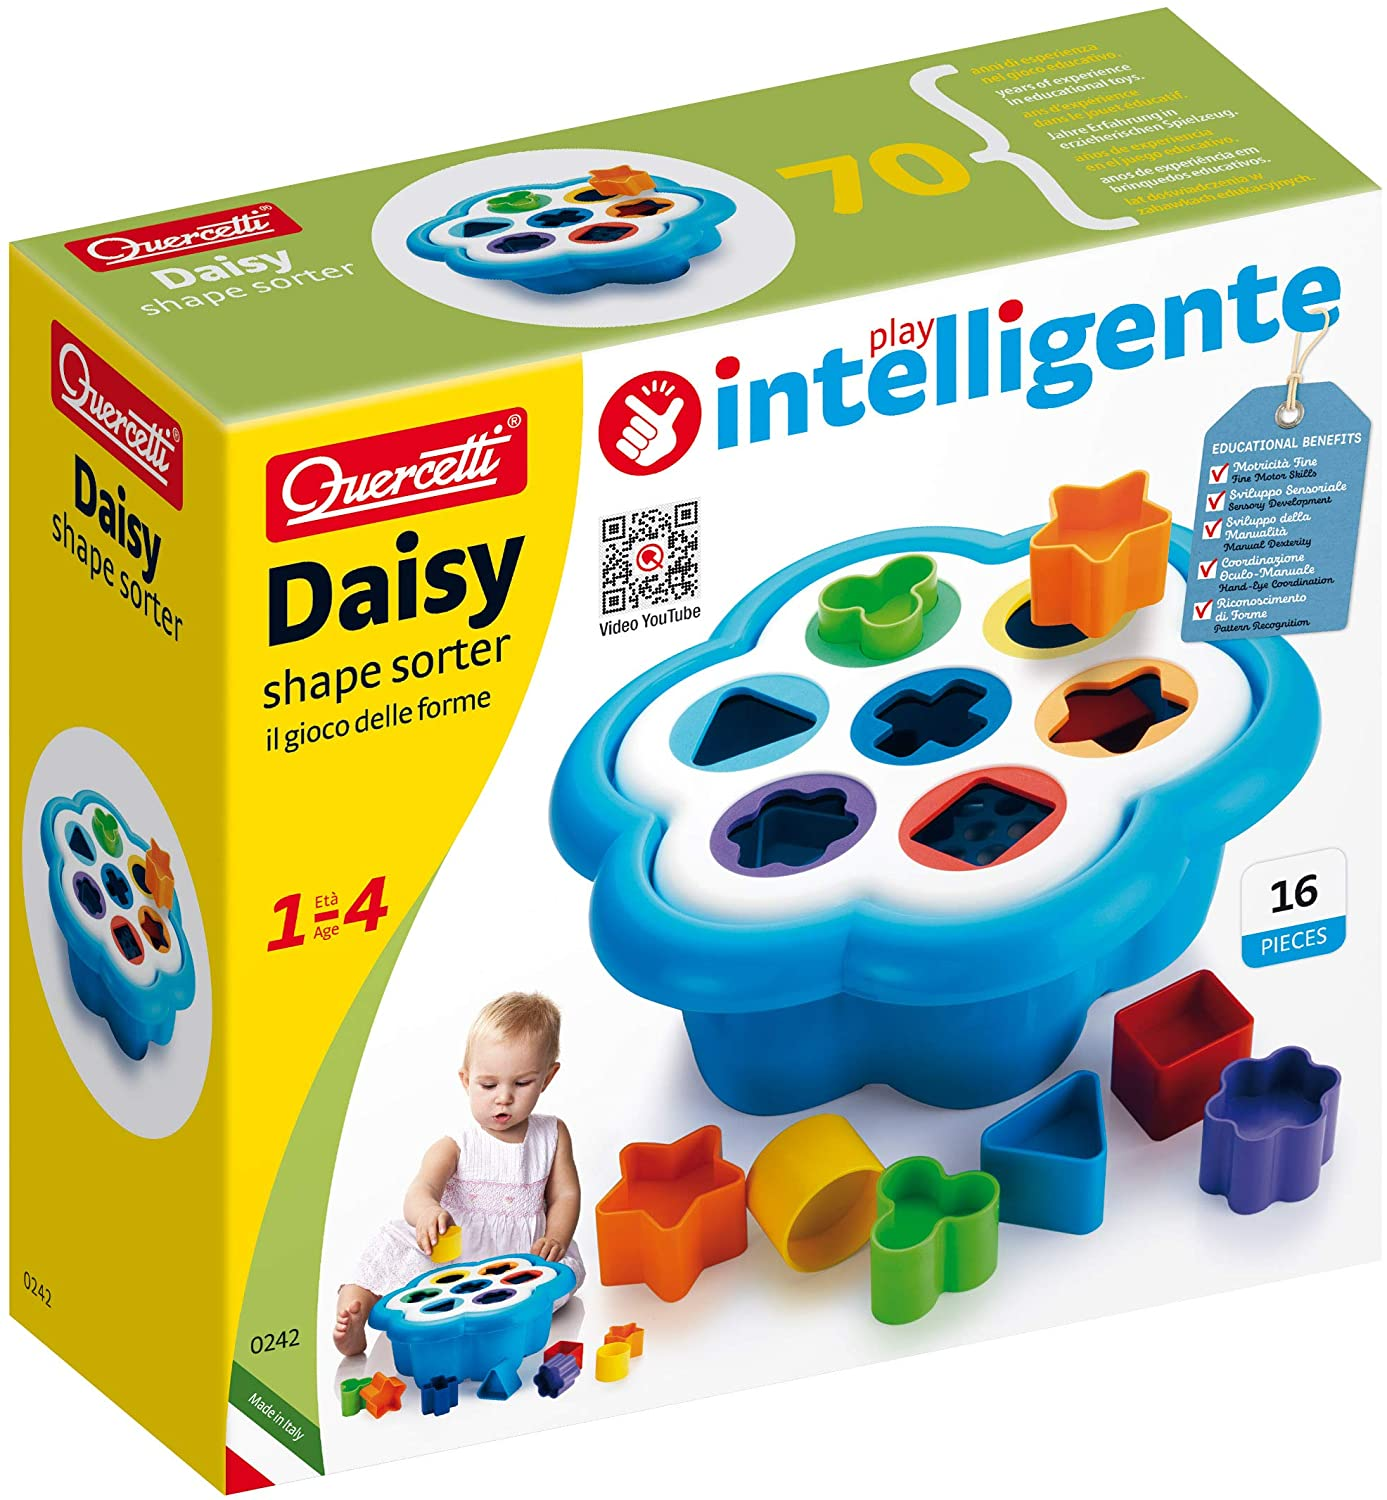 Quercetti Daisy Shape Sorter - Classic 16 Piece Shape and Color Sorting Toy (Made in Italy)